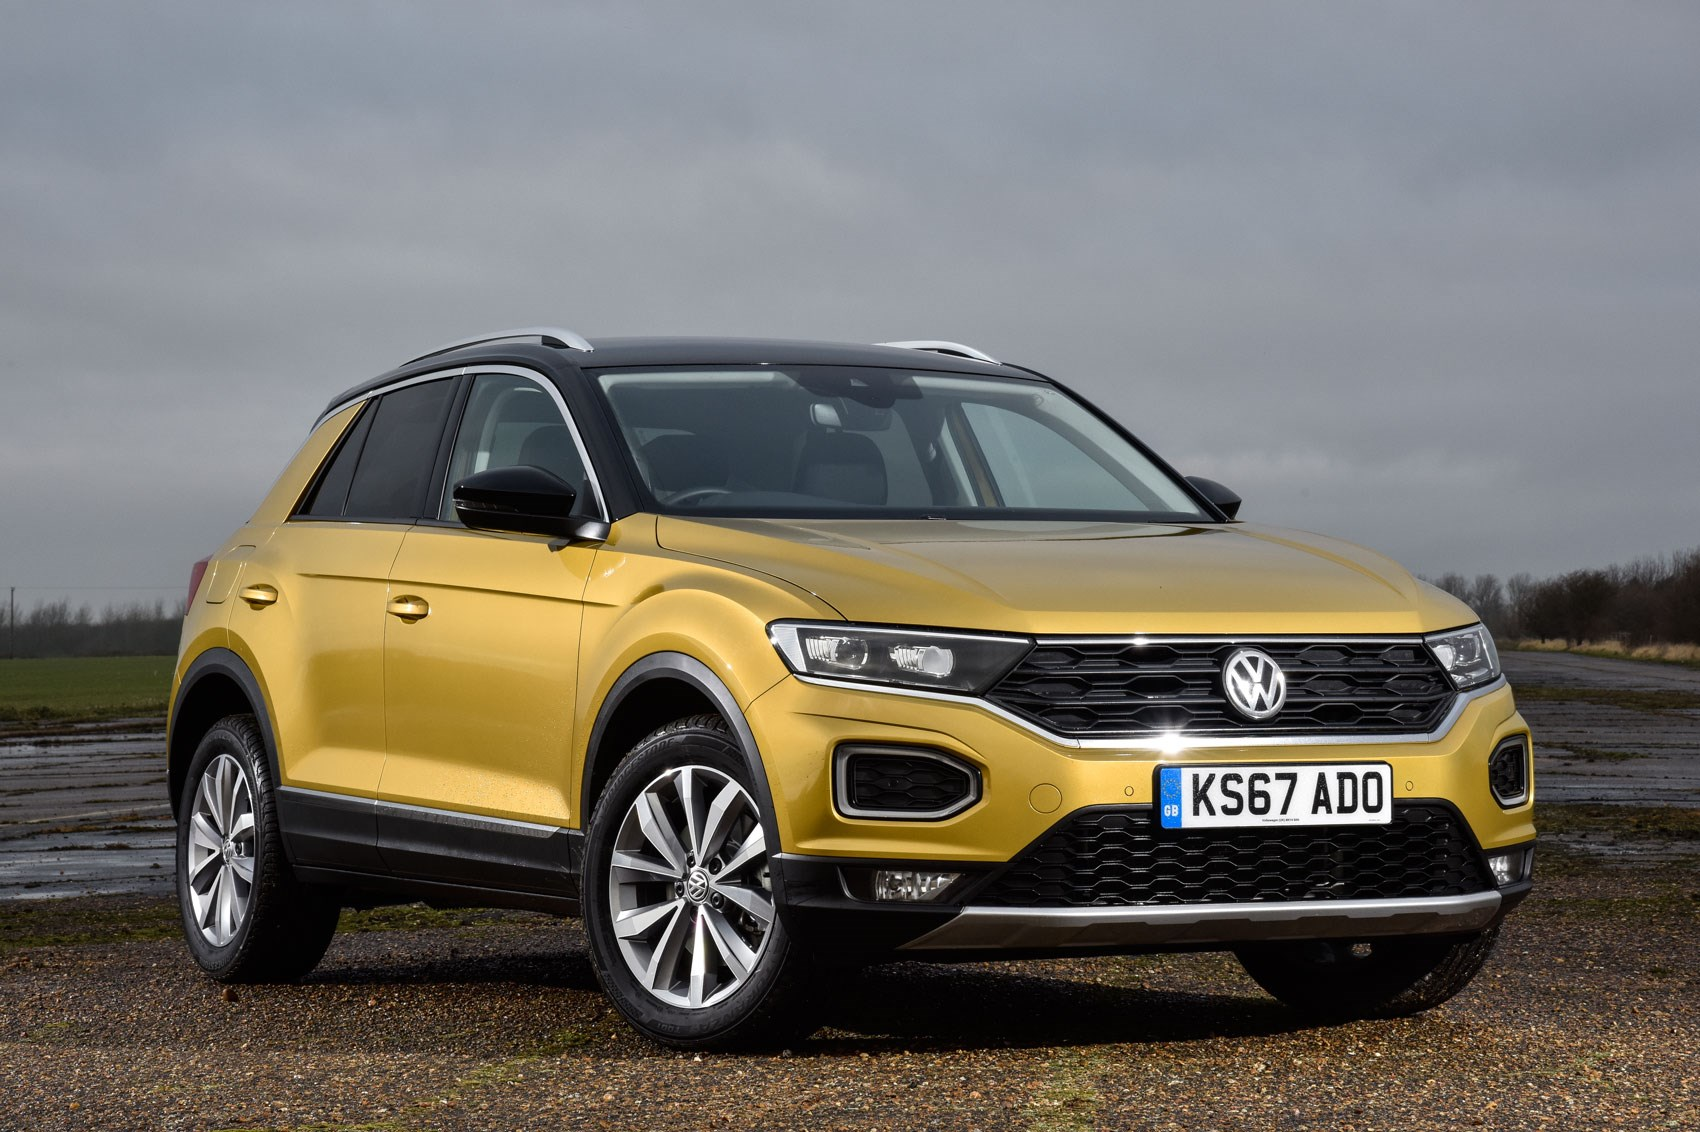 Audi Used For Sale >> VW T-Roc 1.0 TSI Design (2018) review by CAR Magazine